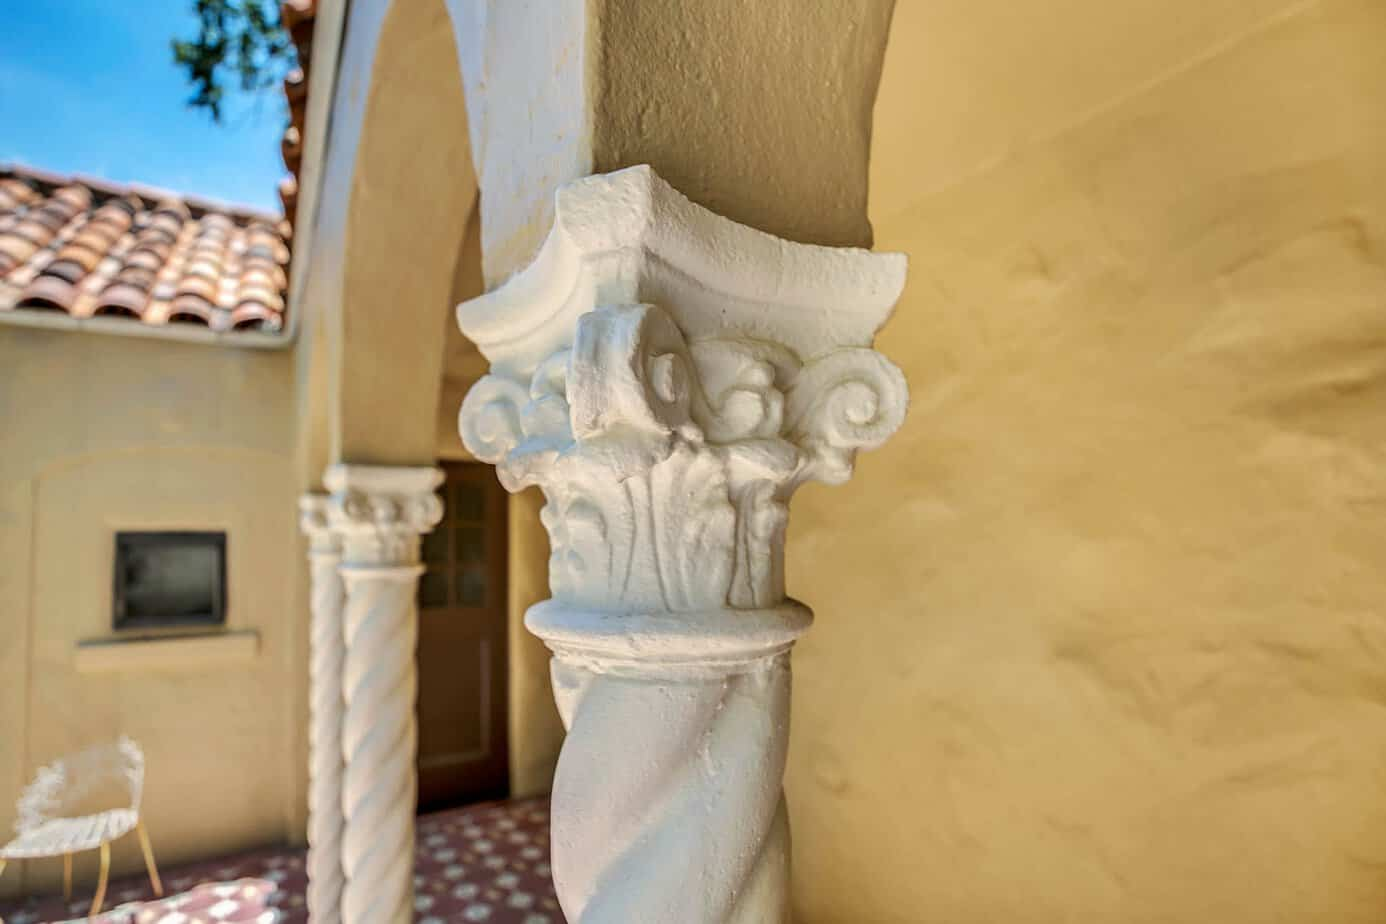 Up close picture of white spiral columns holding up one of the arches of the doorway at the home for sale at 4024 W Bay to Bay Tampa FL 33629